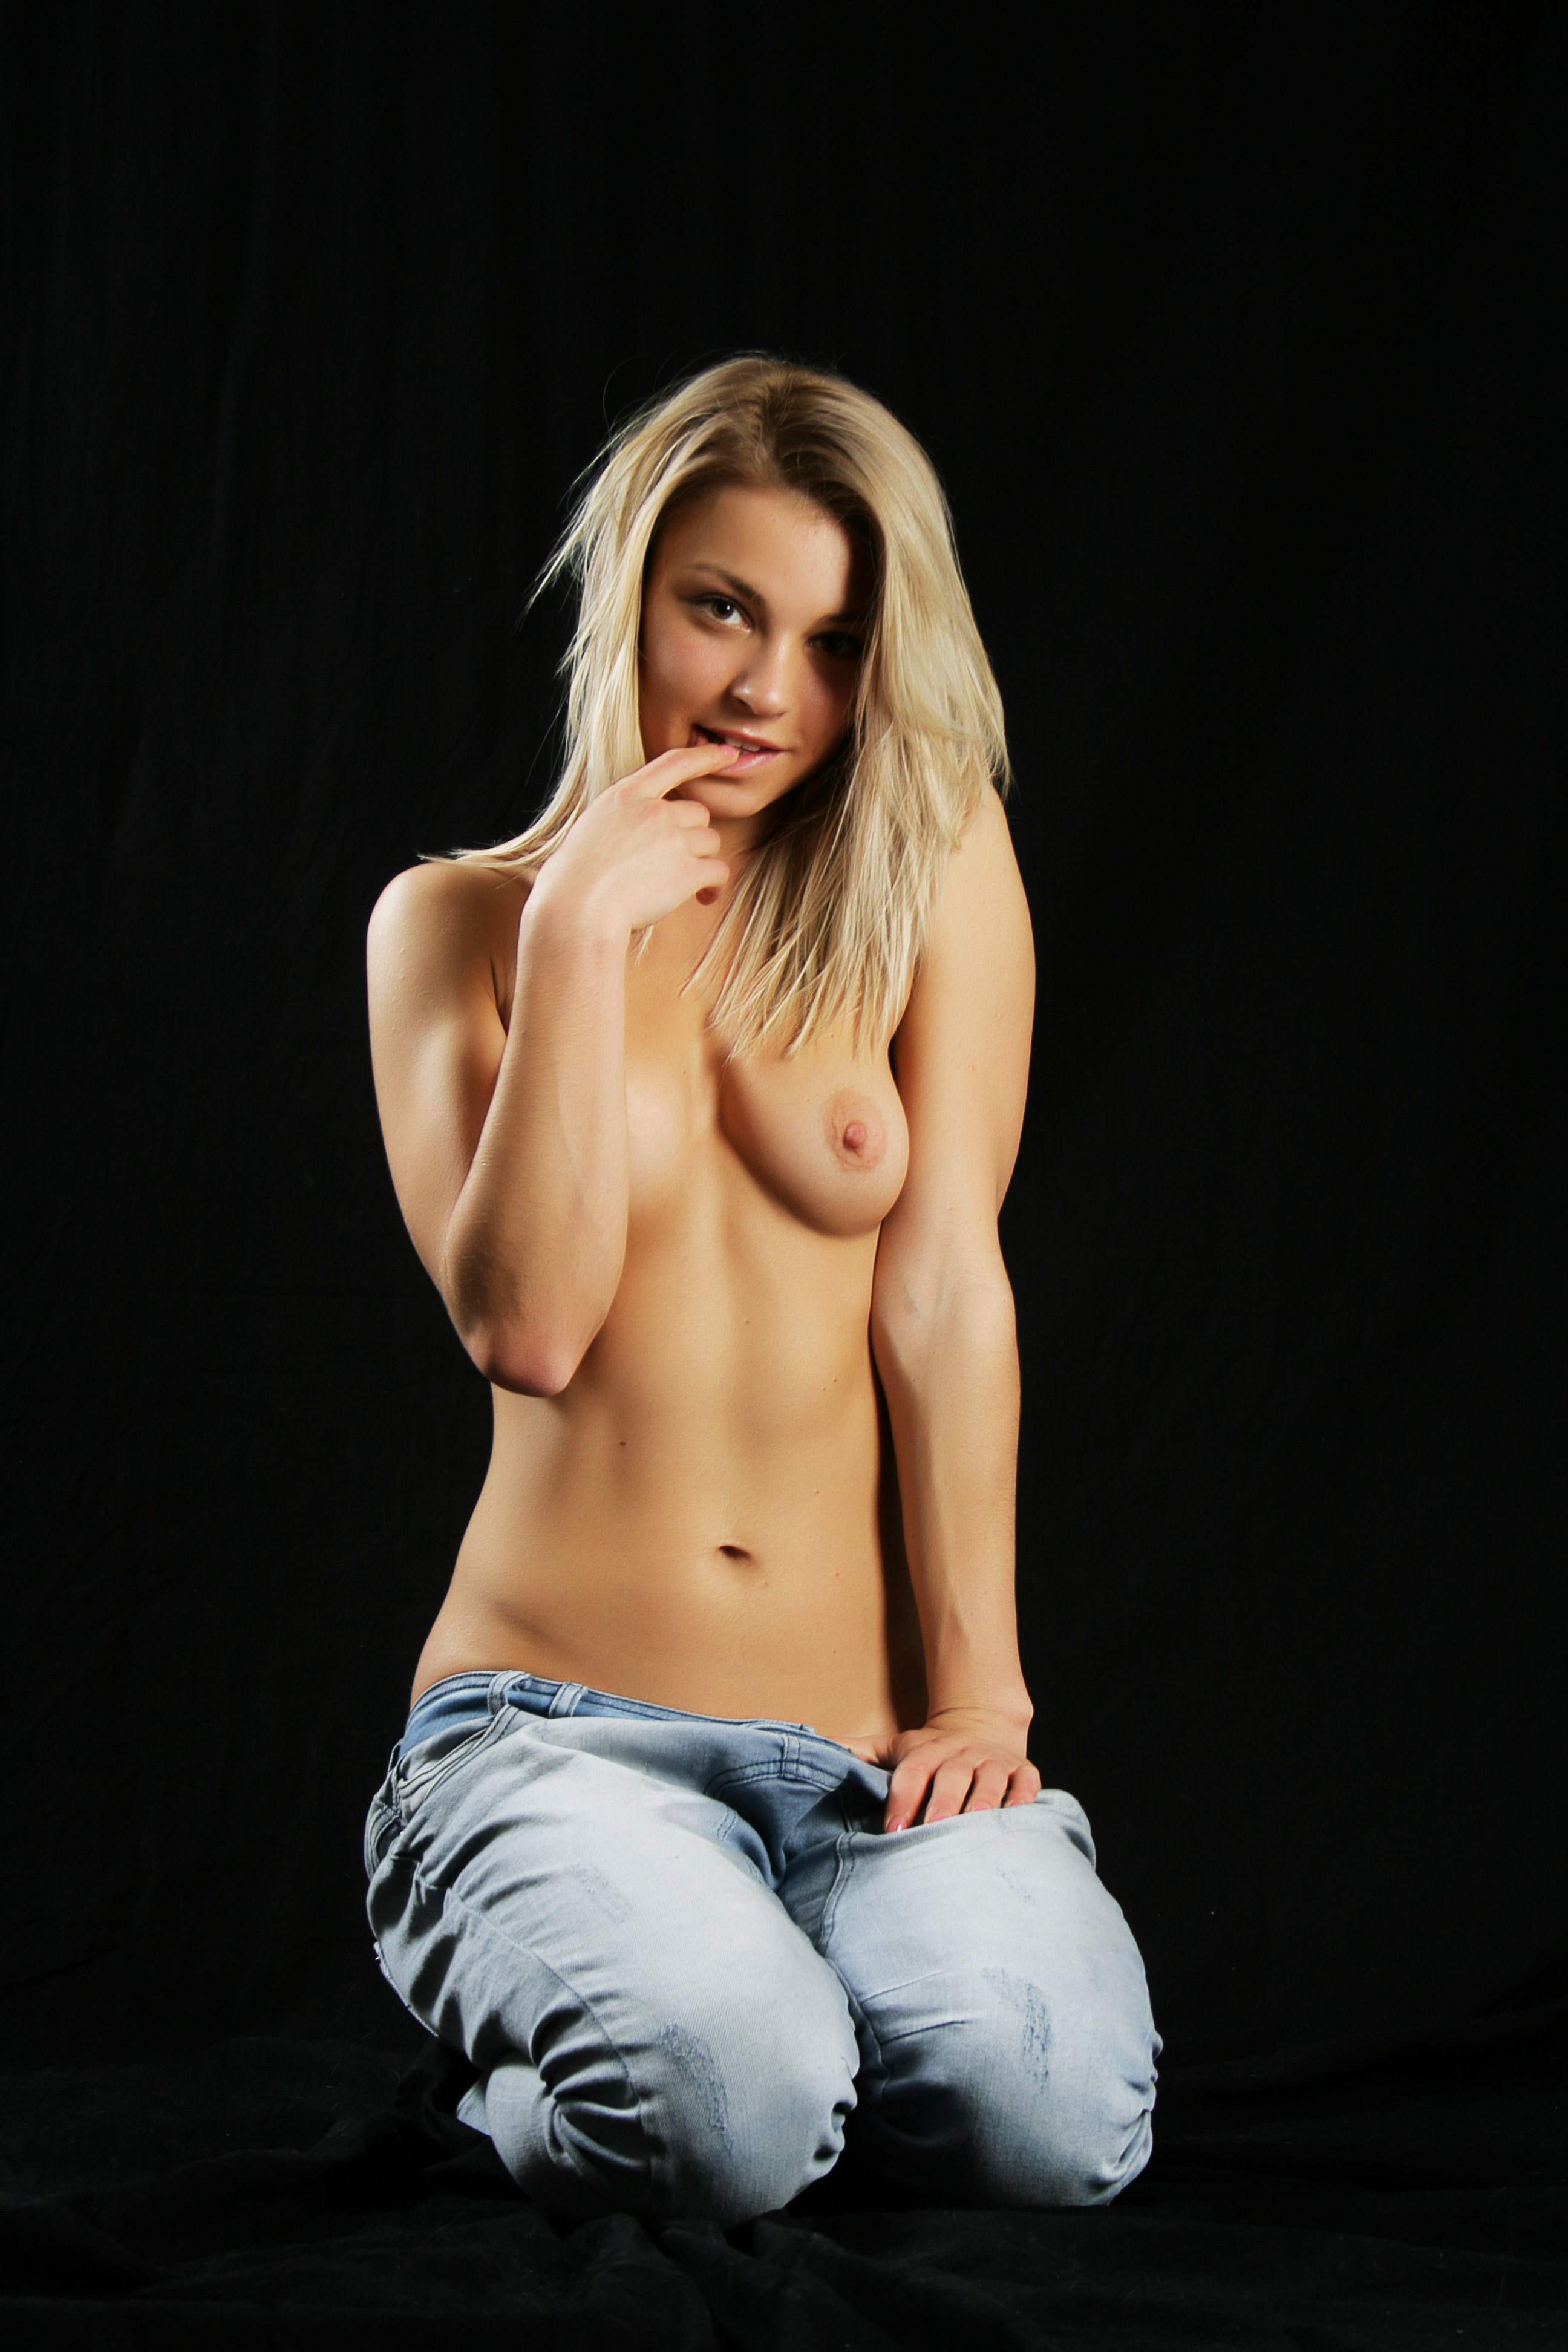 sexy-jeans-naked-girls-mix-vol7-64